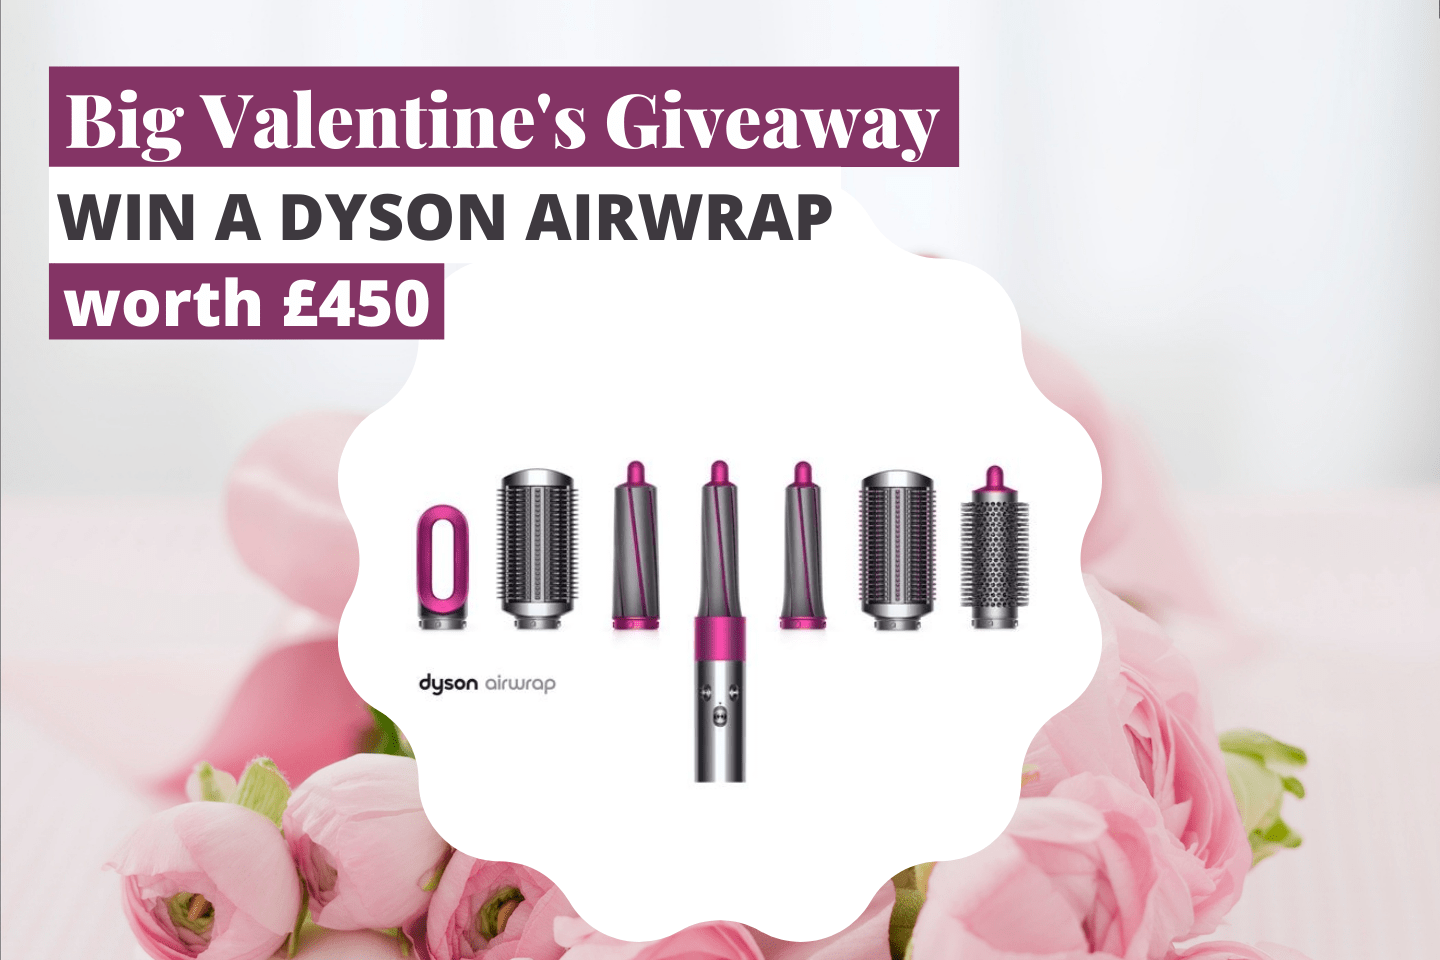 Win a Dyson Airwrap | Enter this fantastic giveaway to win this amazing Dyson Airwrap